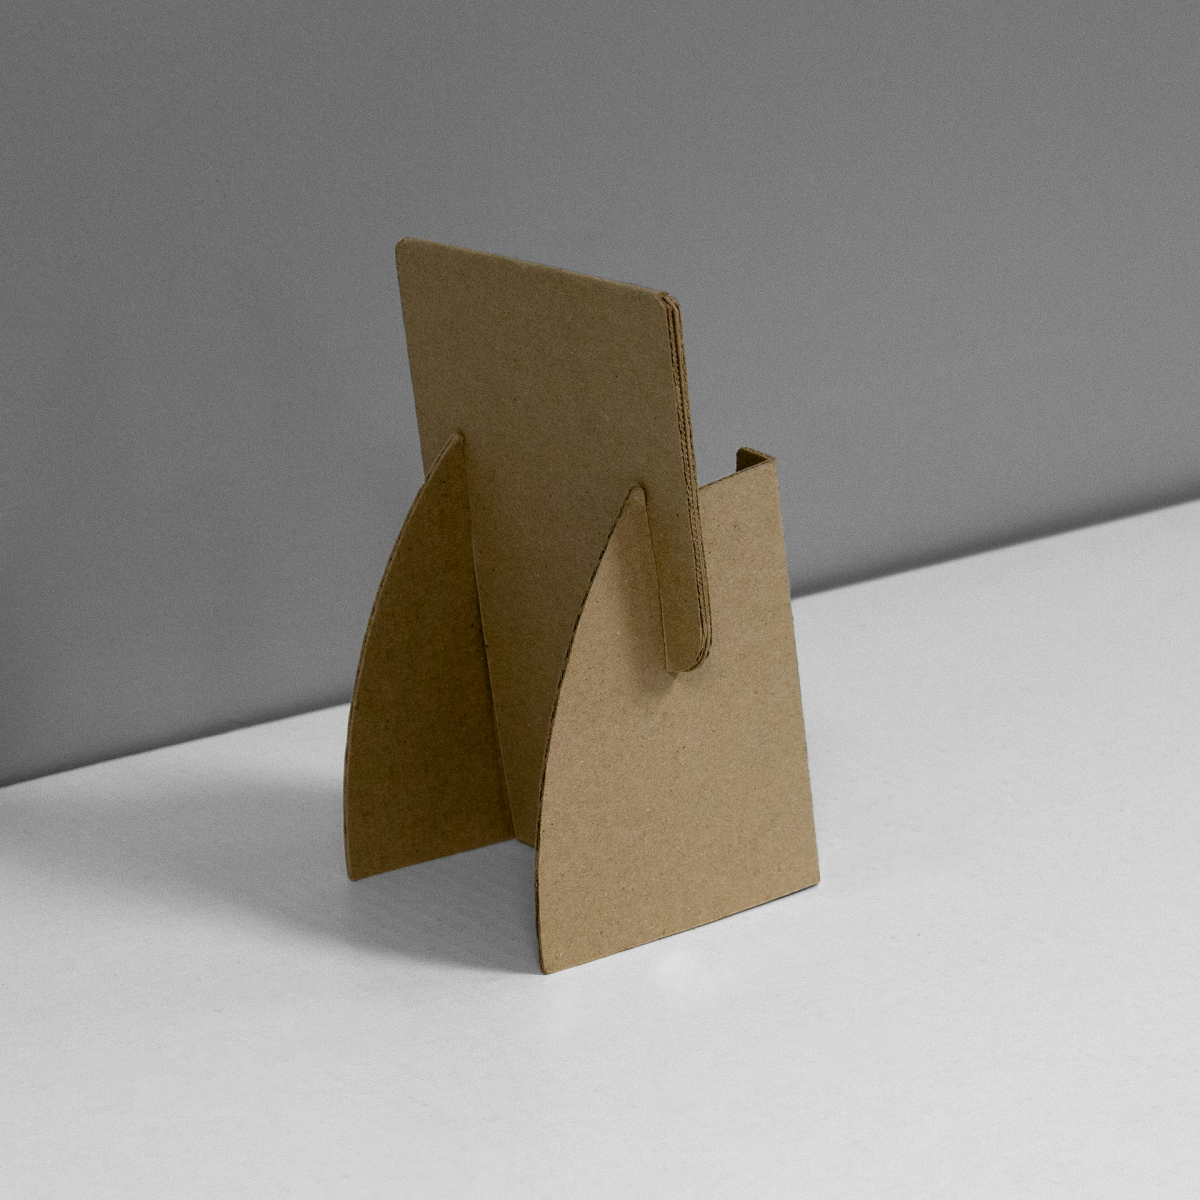 Small Cardboard counter display for business cards or small pamphlets - rear view, kraft